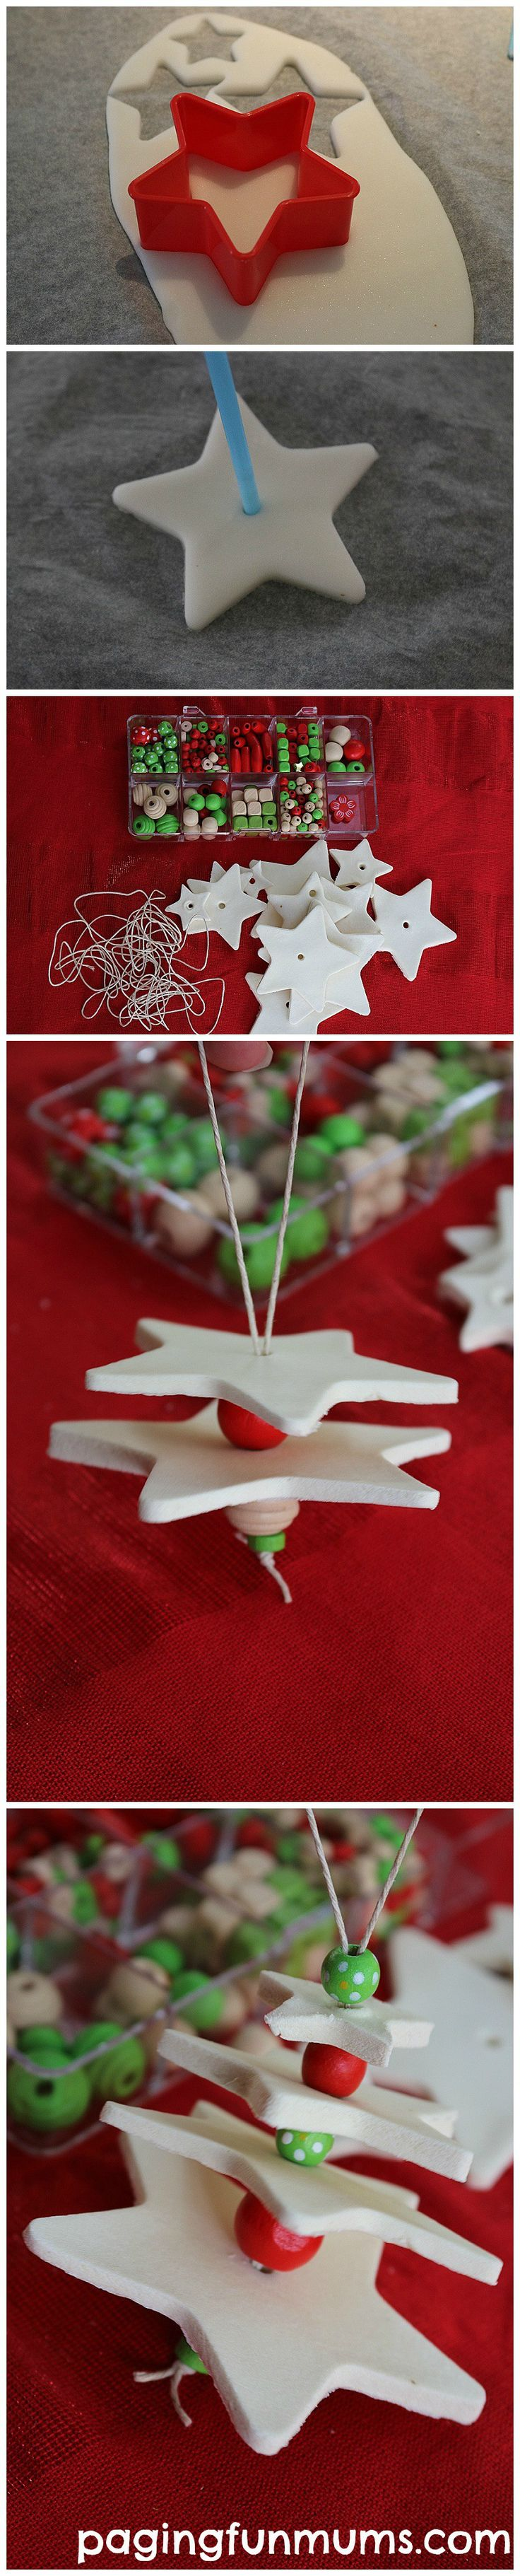 Clay Christmas Tree Craft perfect to do with children - made using homemade clay!